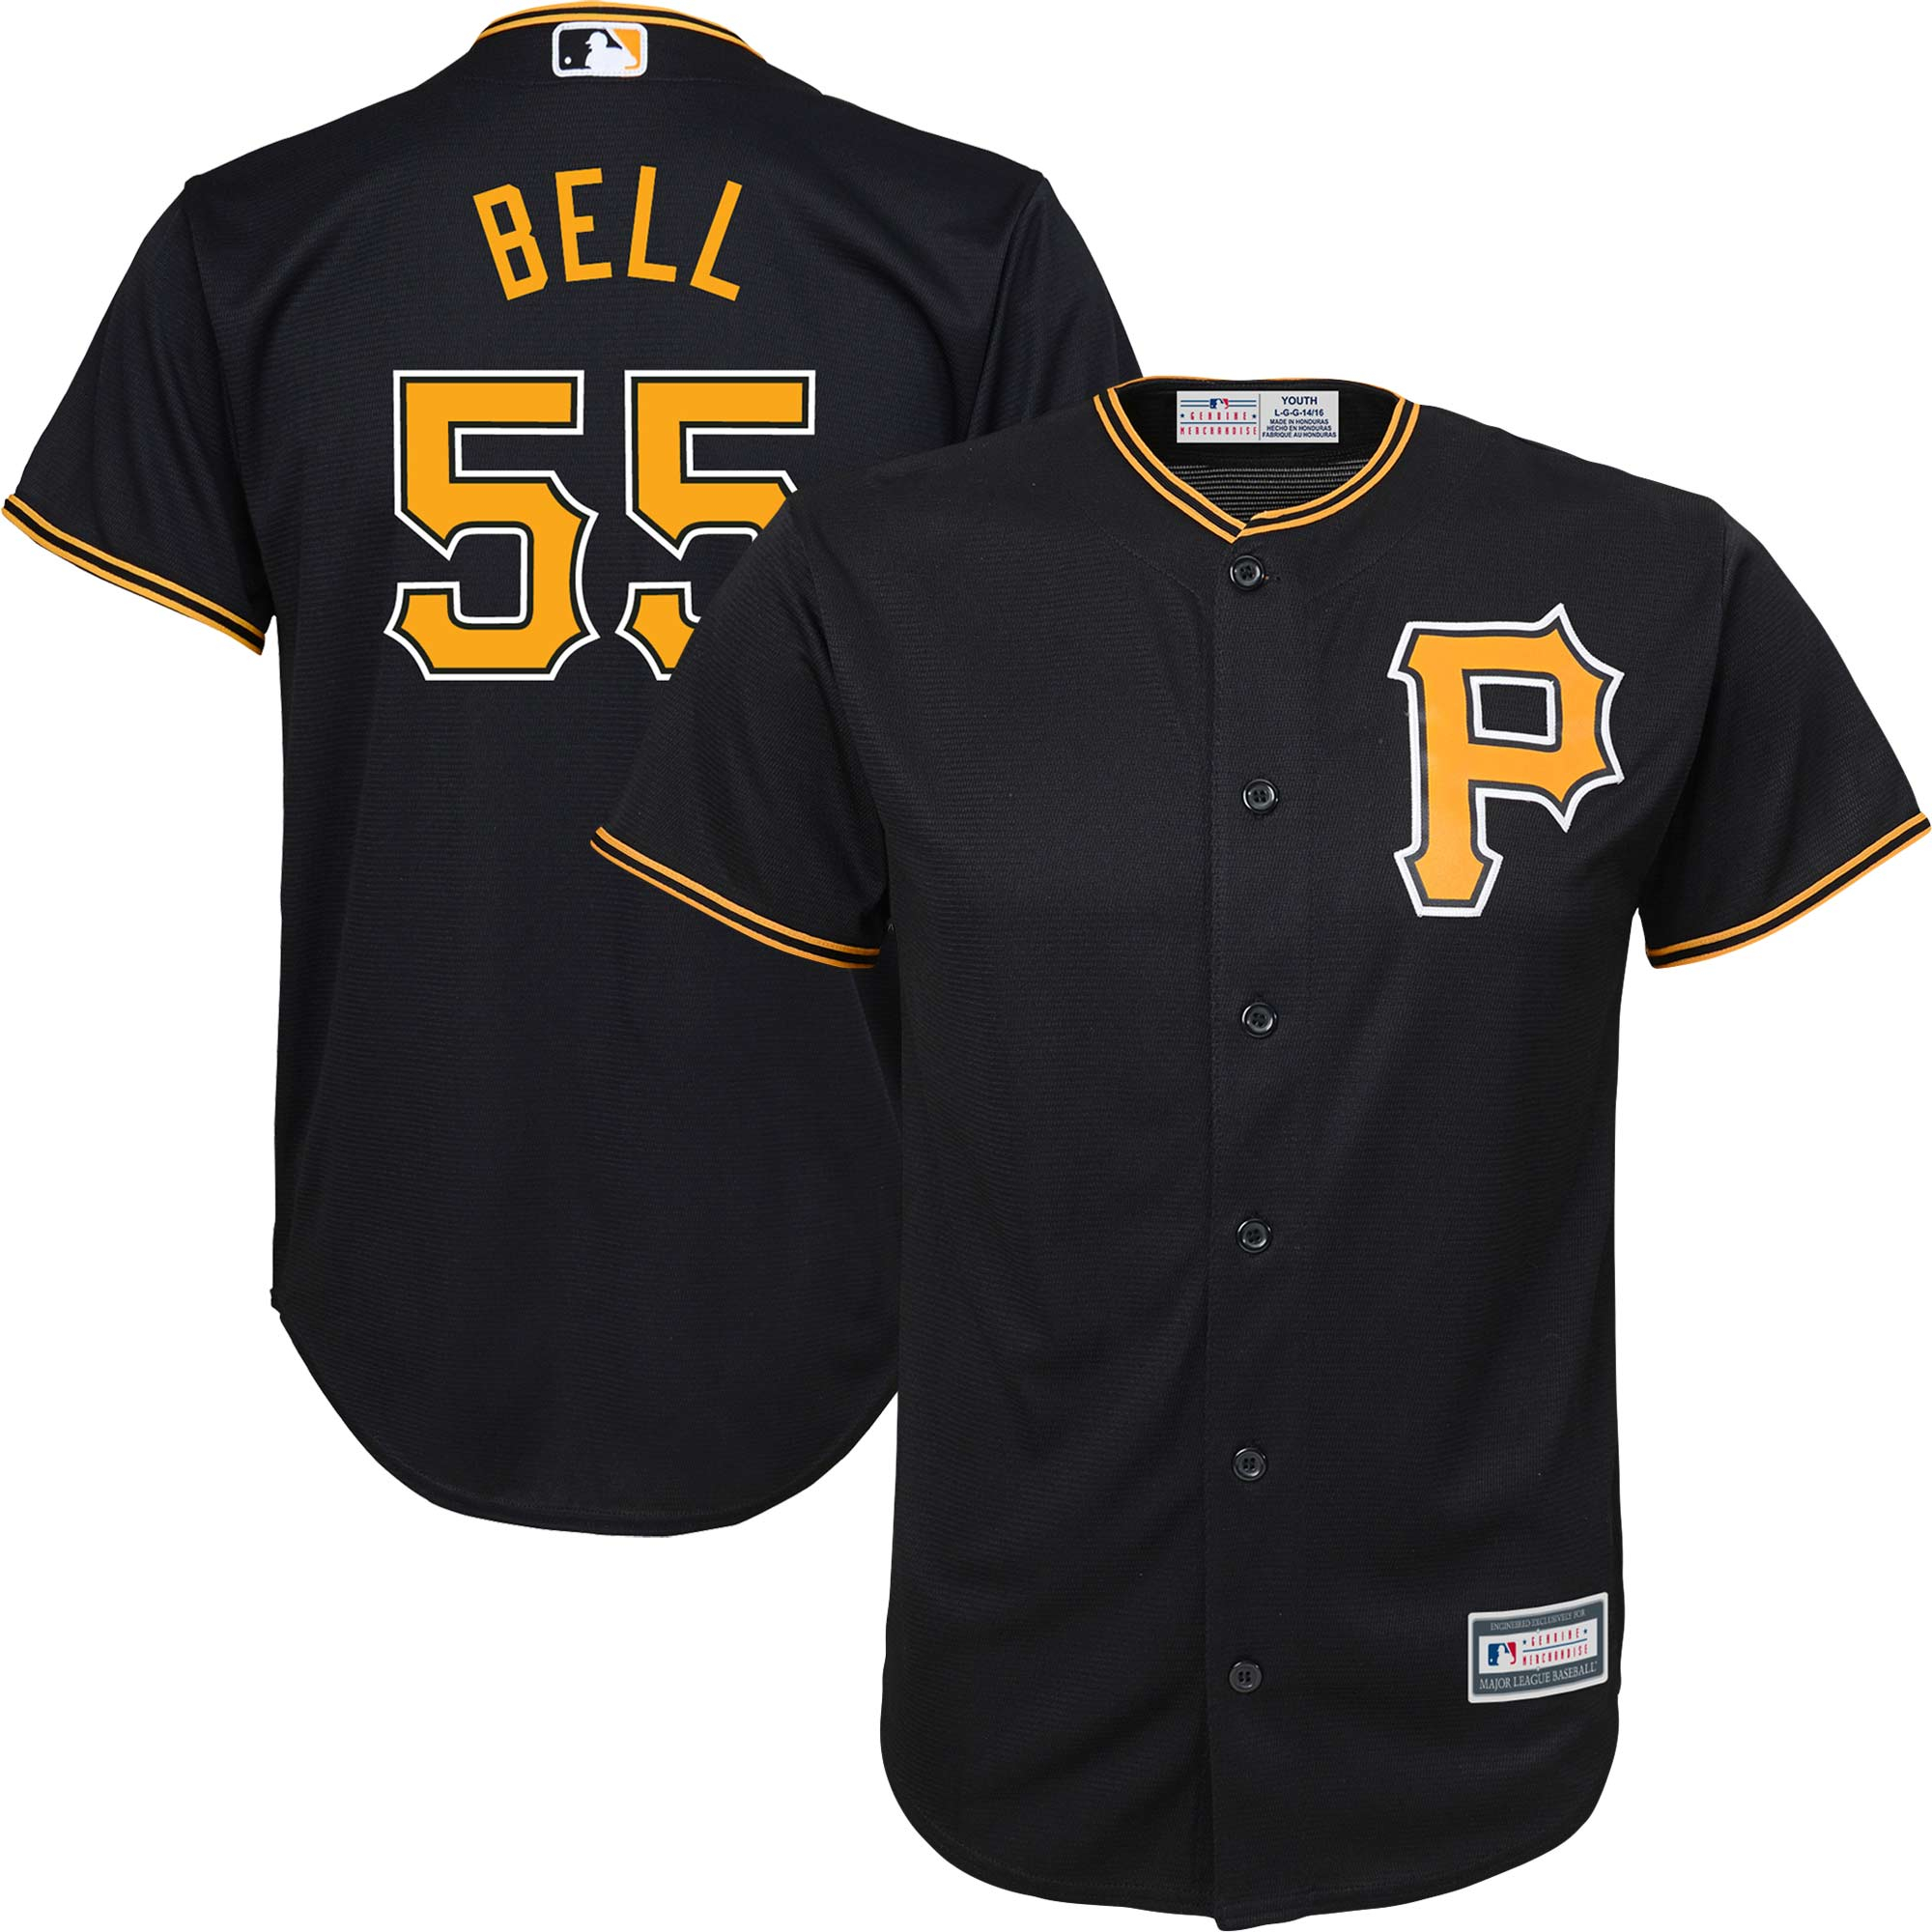 Josh Bell Pittsburgh Pirates Majestic Youth Alternate Replica Player Jersey - Black